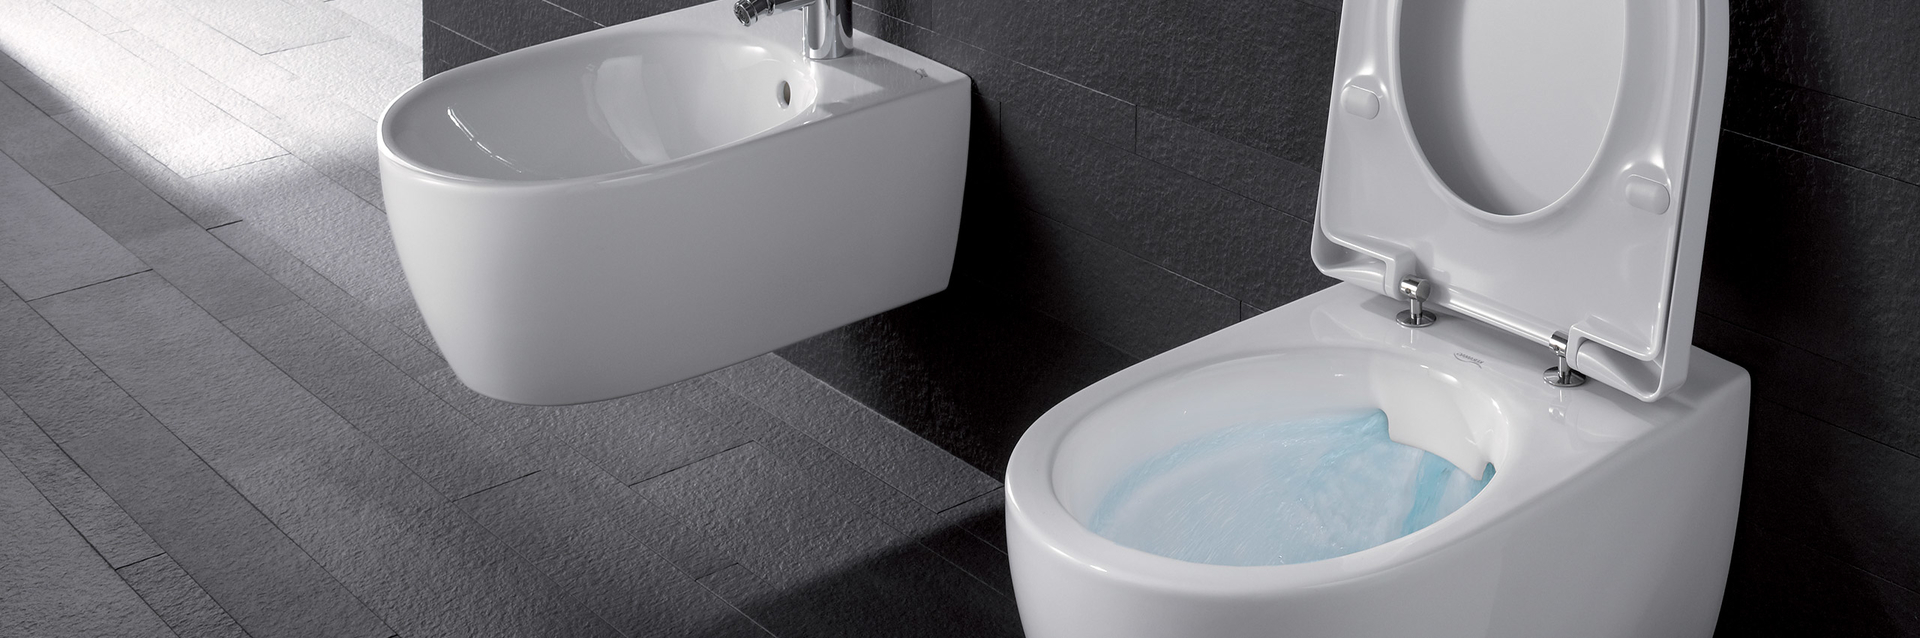 Geberit Rimfree toilet - Geberit Rimfree toilet